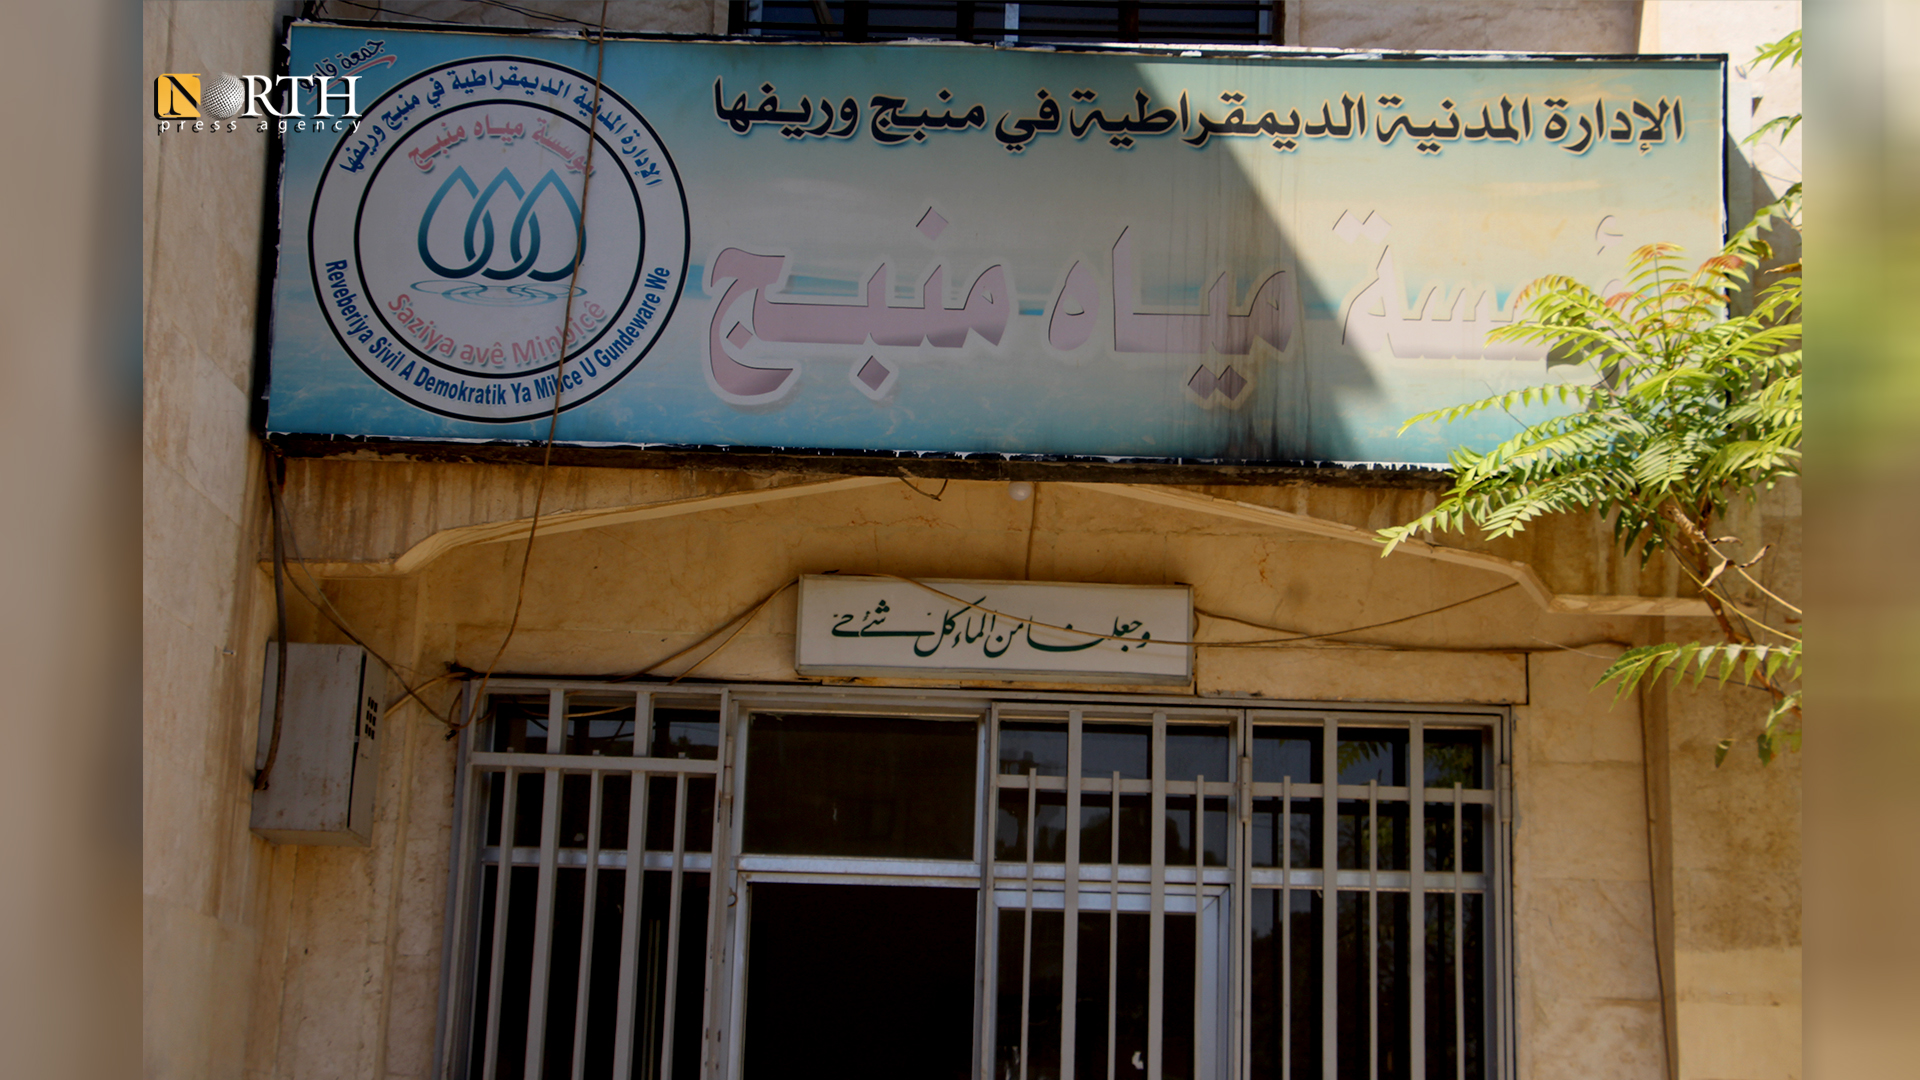 Water Directorate in Manbij – North Press